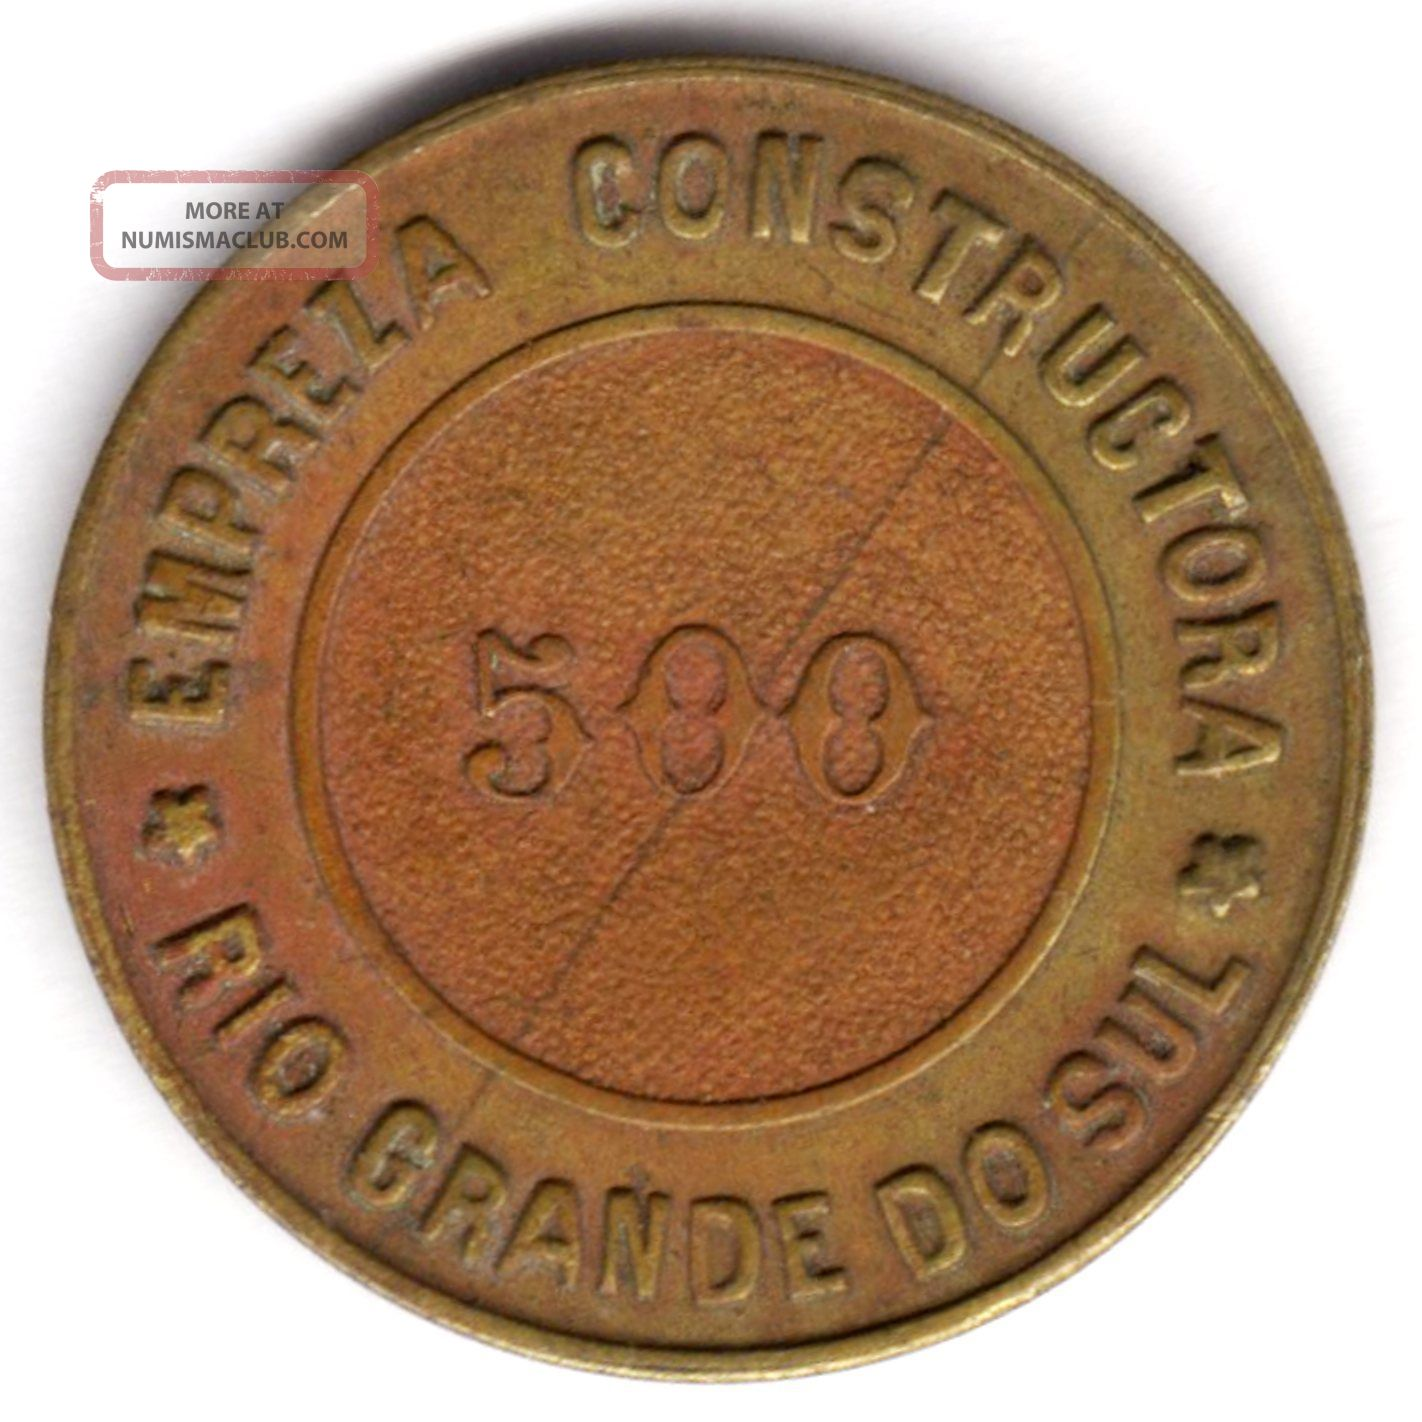 Brazil Empreza Constructora Rio Grande Do Sul 500 Reis Token Brass Scarce Exonumia photo